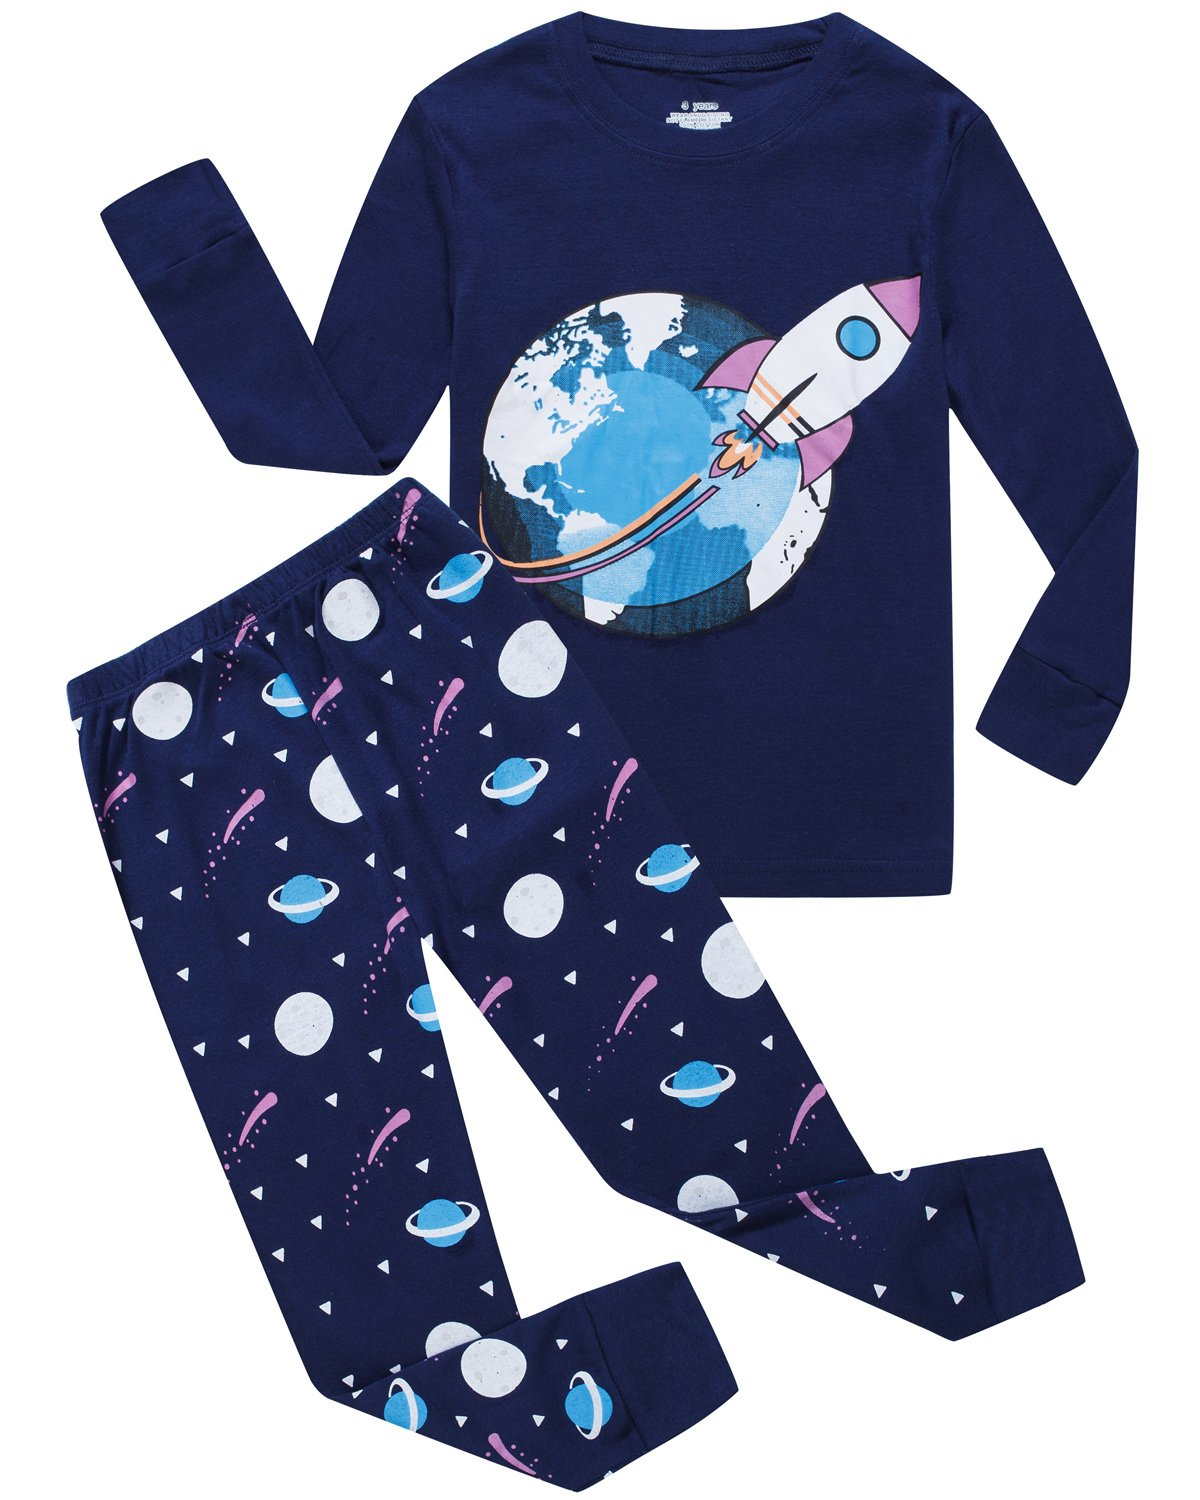 Babyroom Boys Pajamas Cotton Toddler Pjs Kids Sleepwear Sets Clothes Shirts GHW-TR